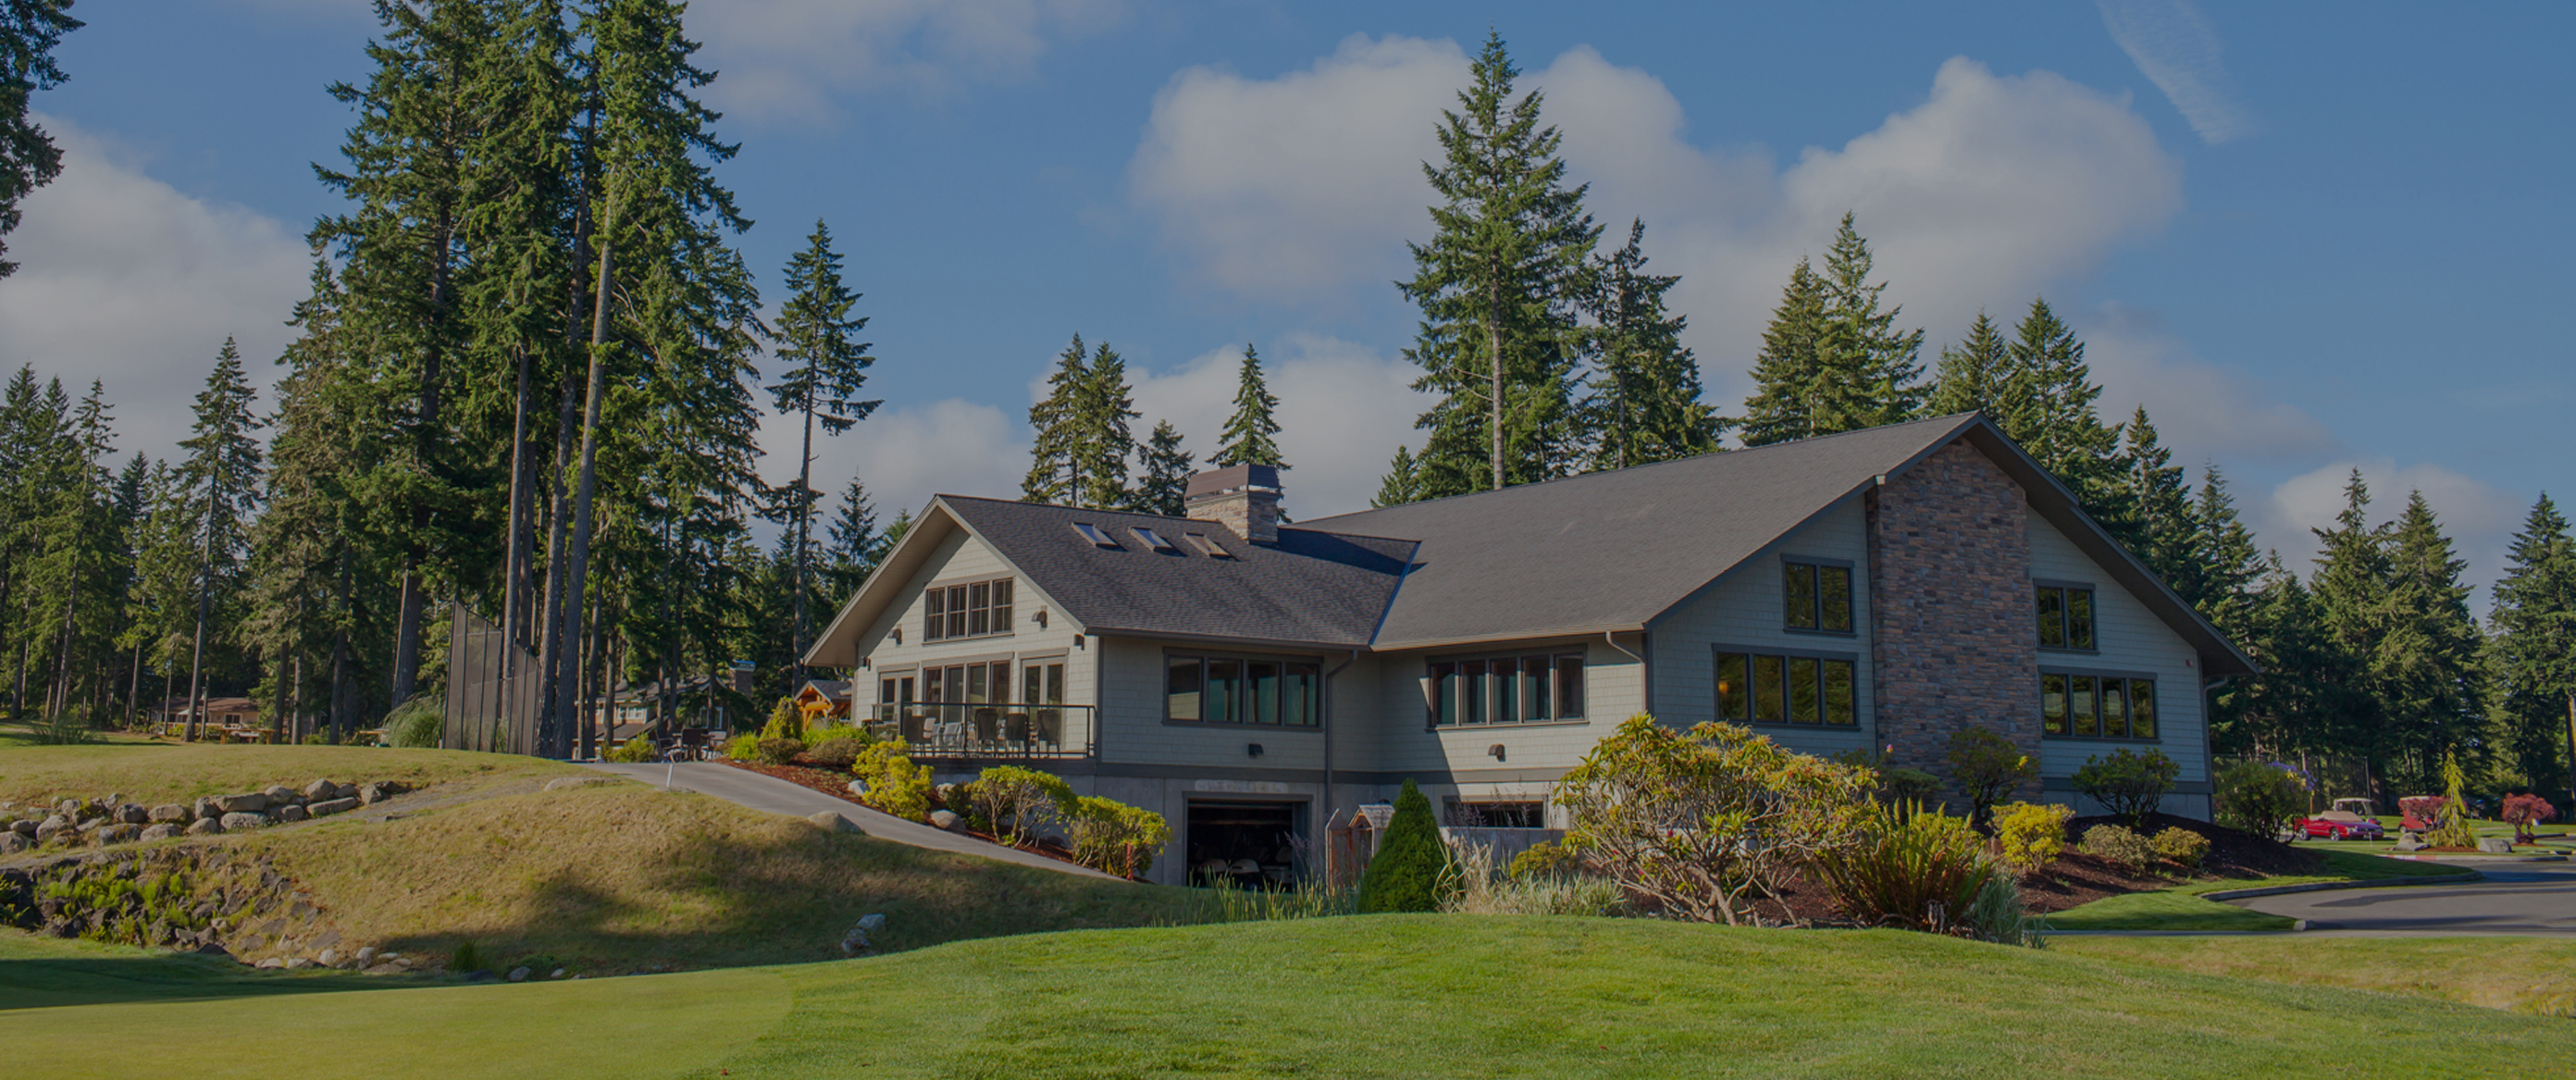 Home Alderbrook Properties